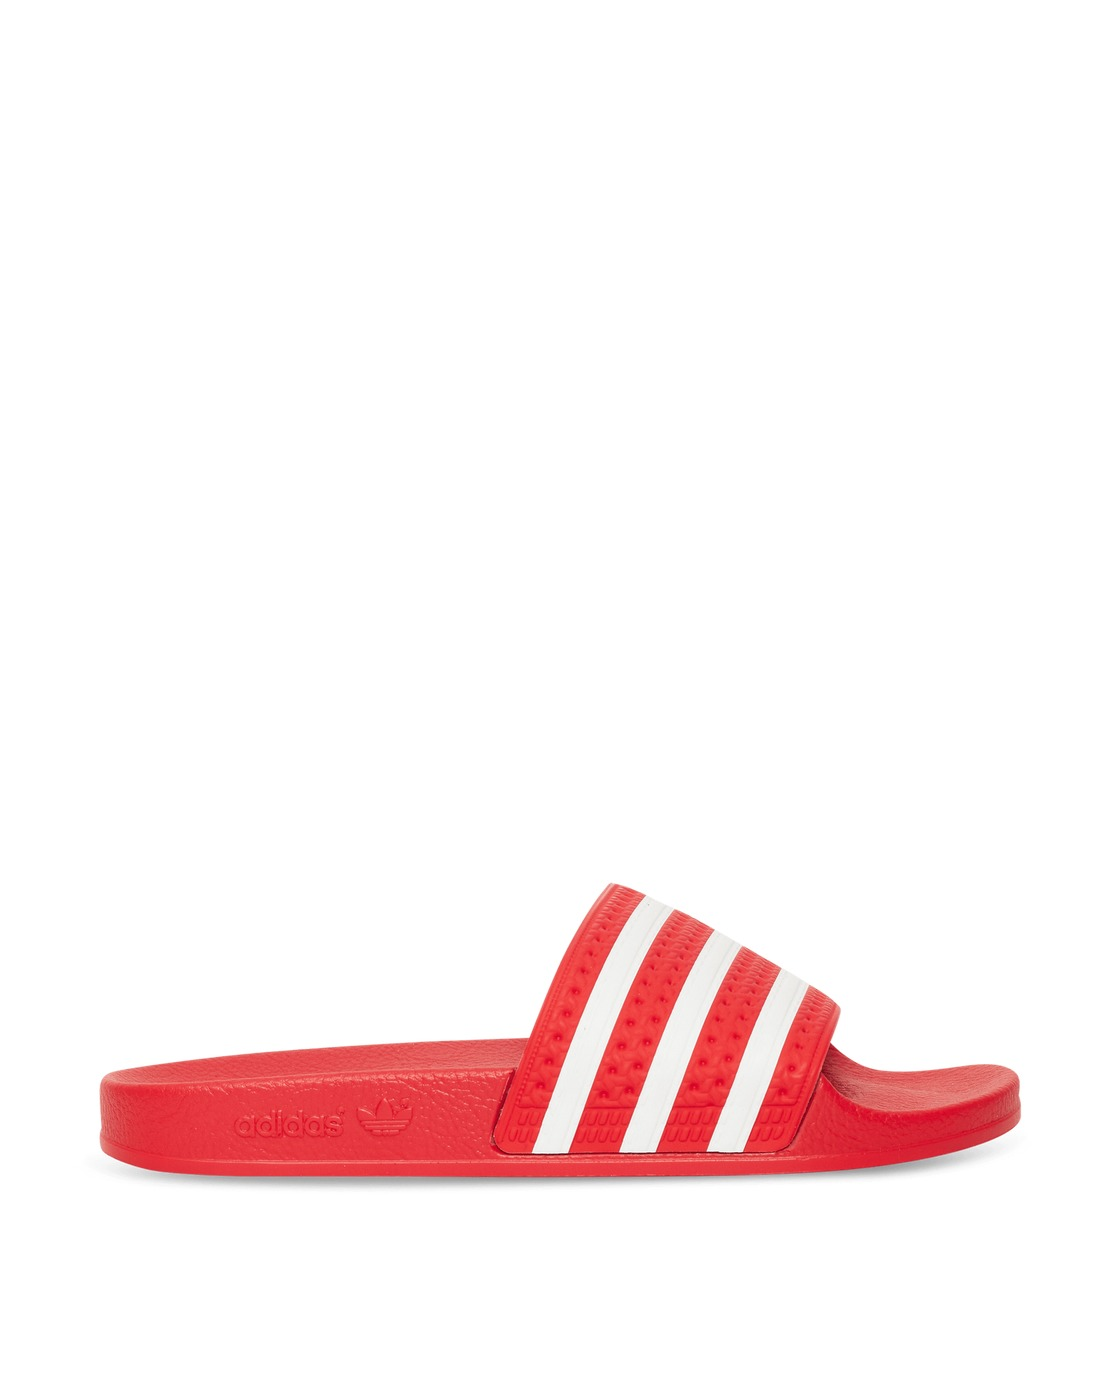 Photo: Adidas Originals Adilette Slides Lush Red/Ftwr White